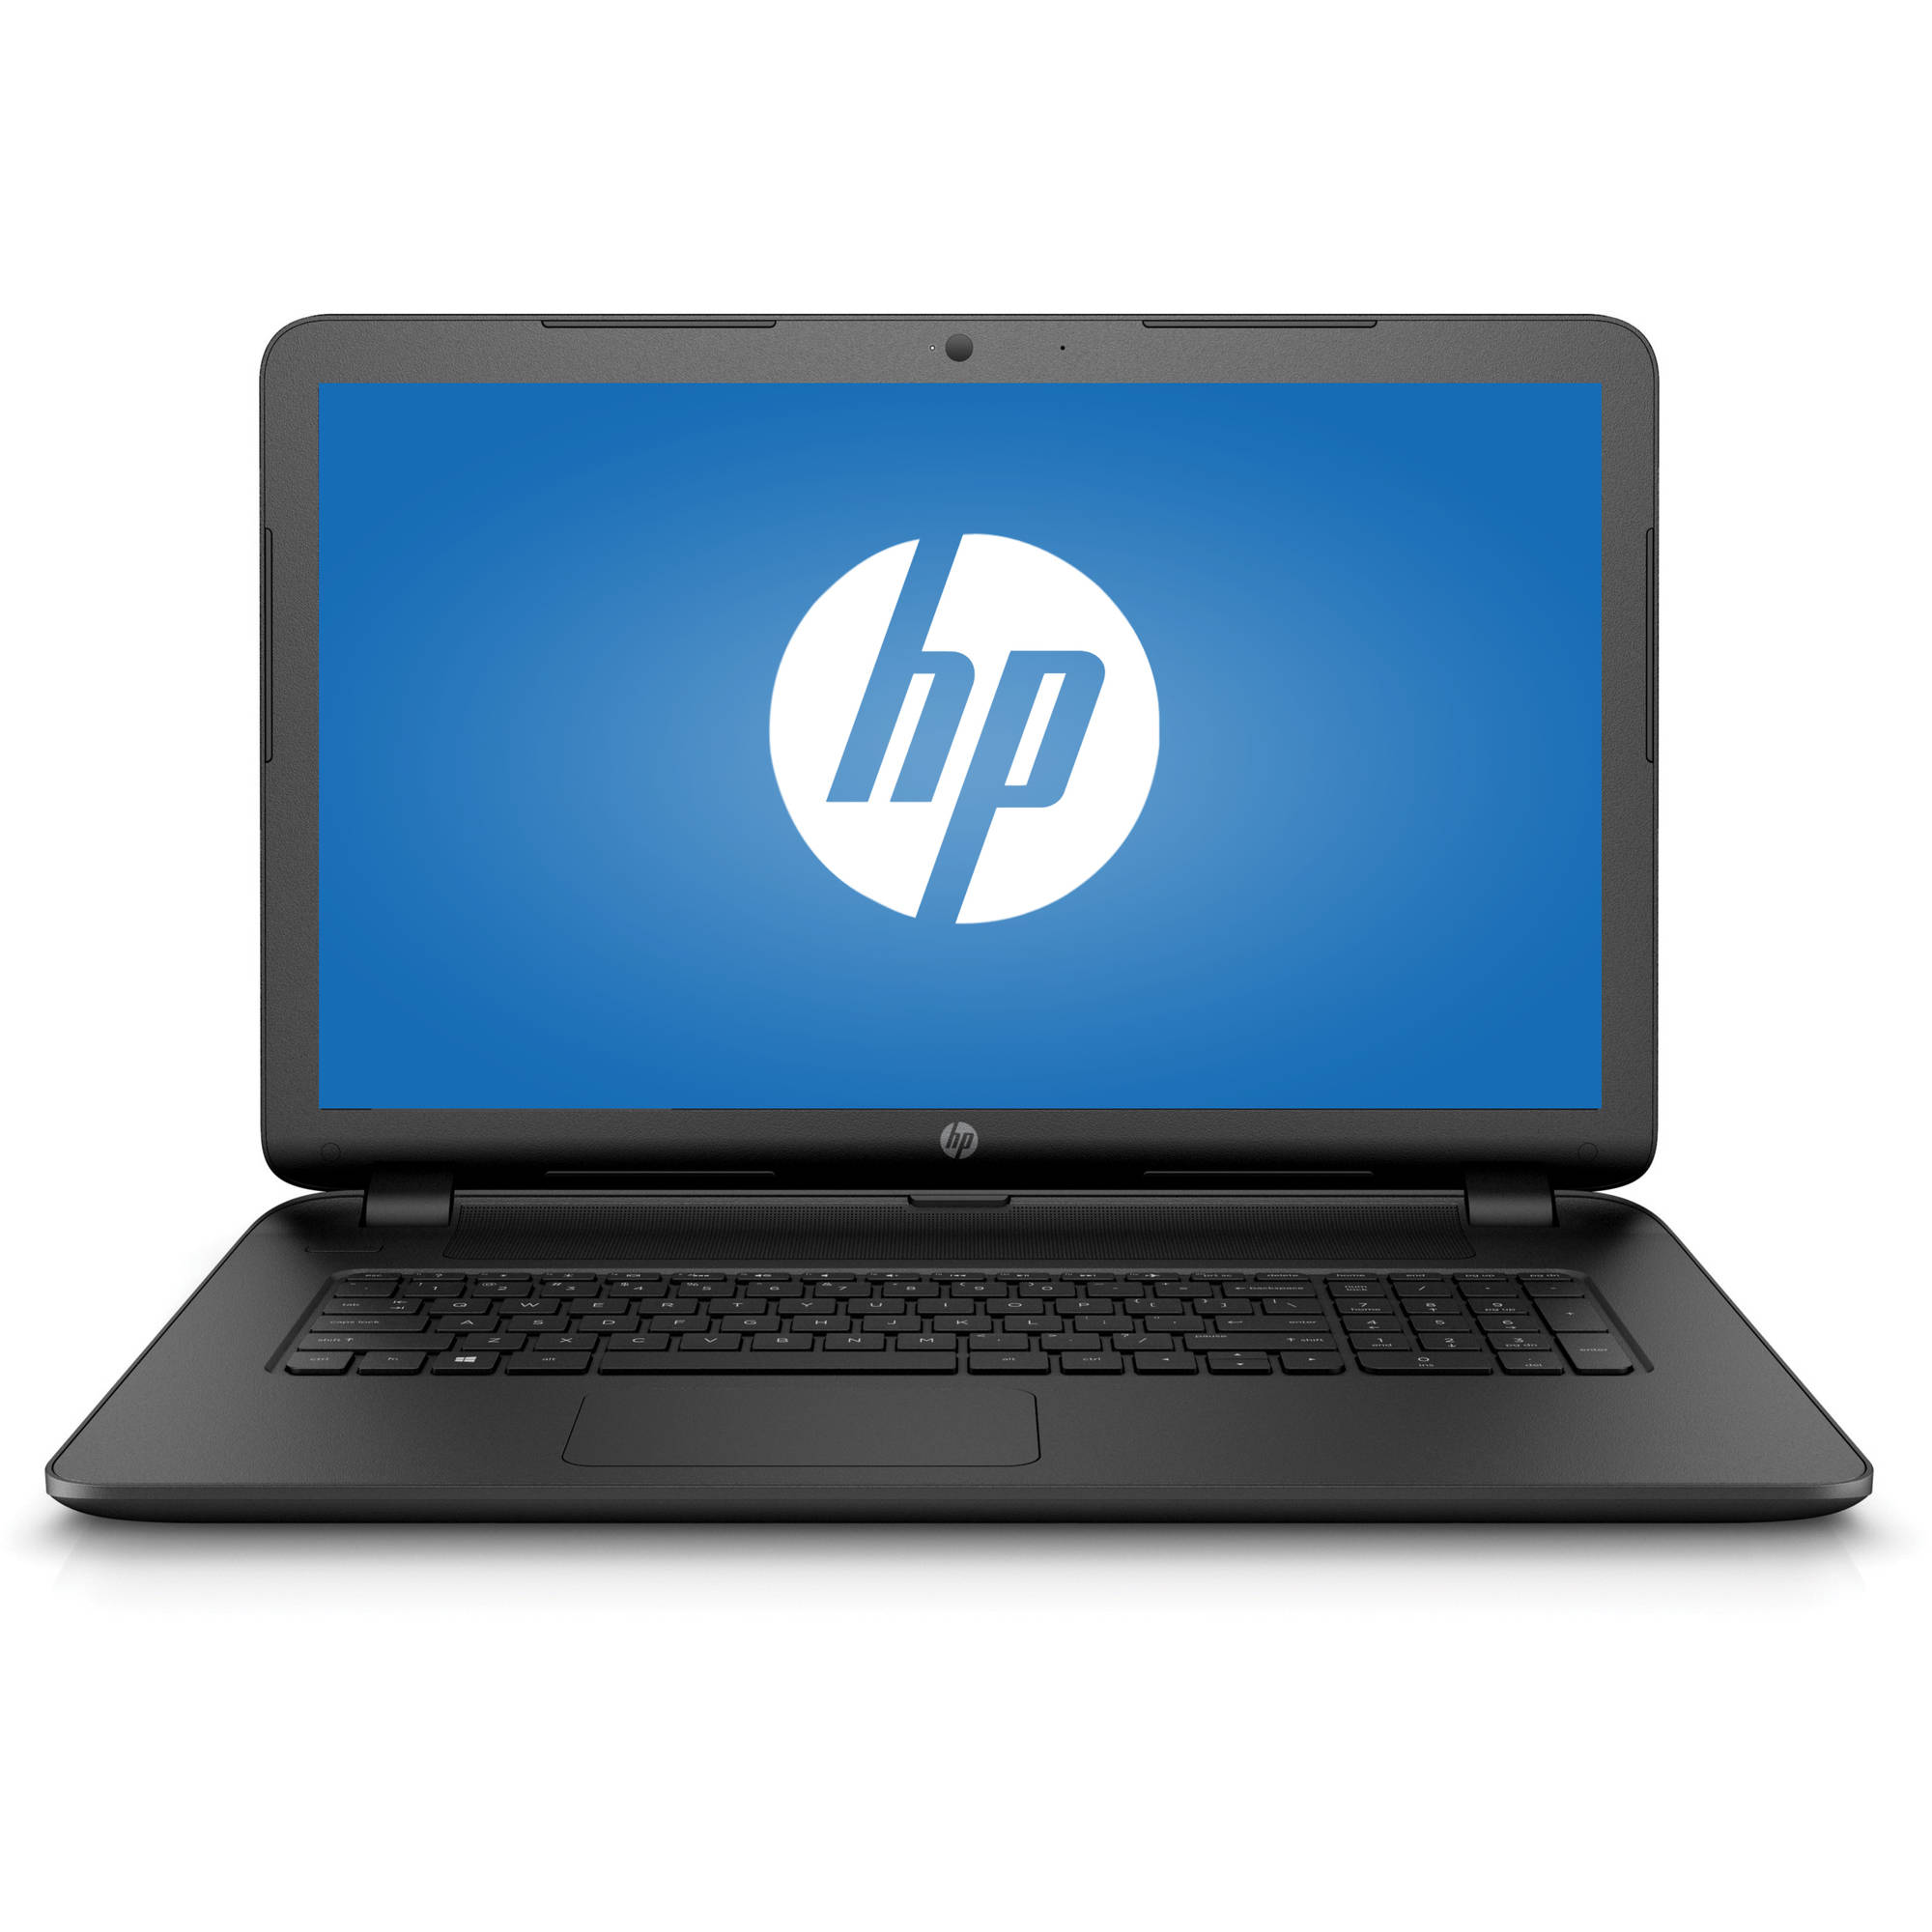 "HP Black 17.3"" 17-p120wm Laptop PC with AMD A8-7050 Dual-Core Processor, 4GB Memory, 750GB Hard Drive and Windows 10 Home"